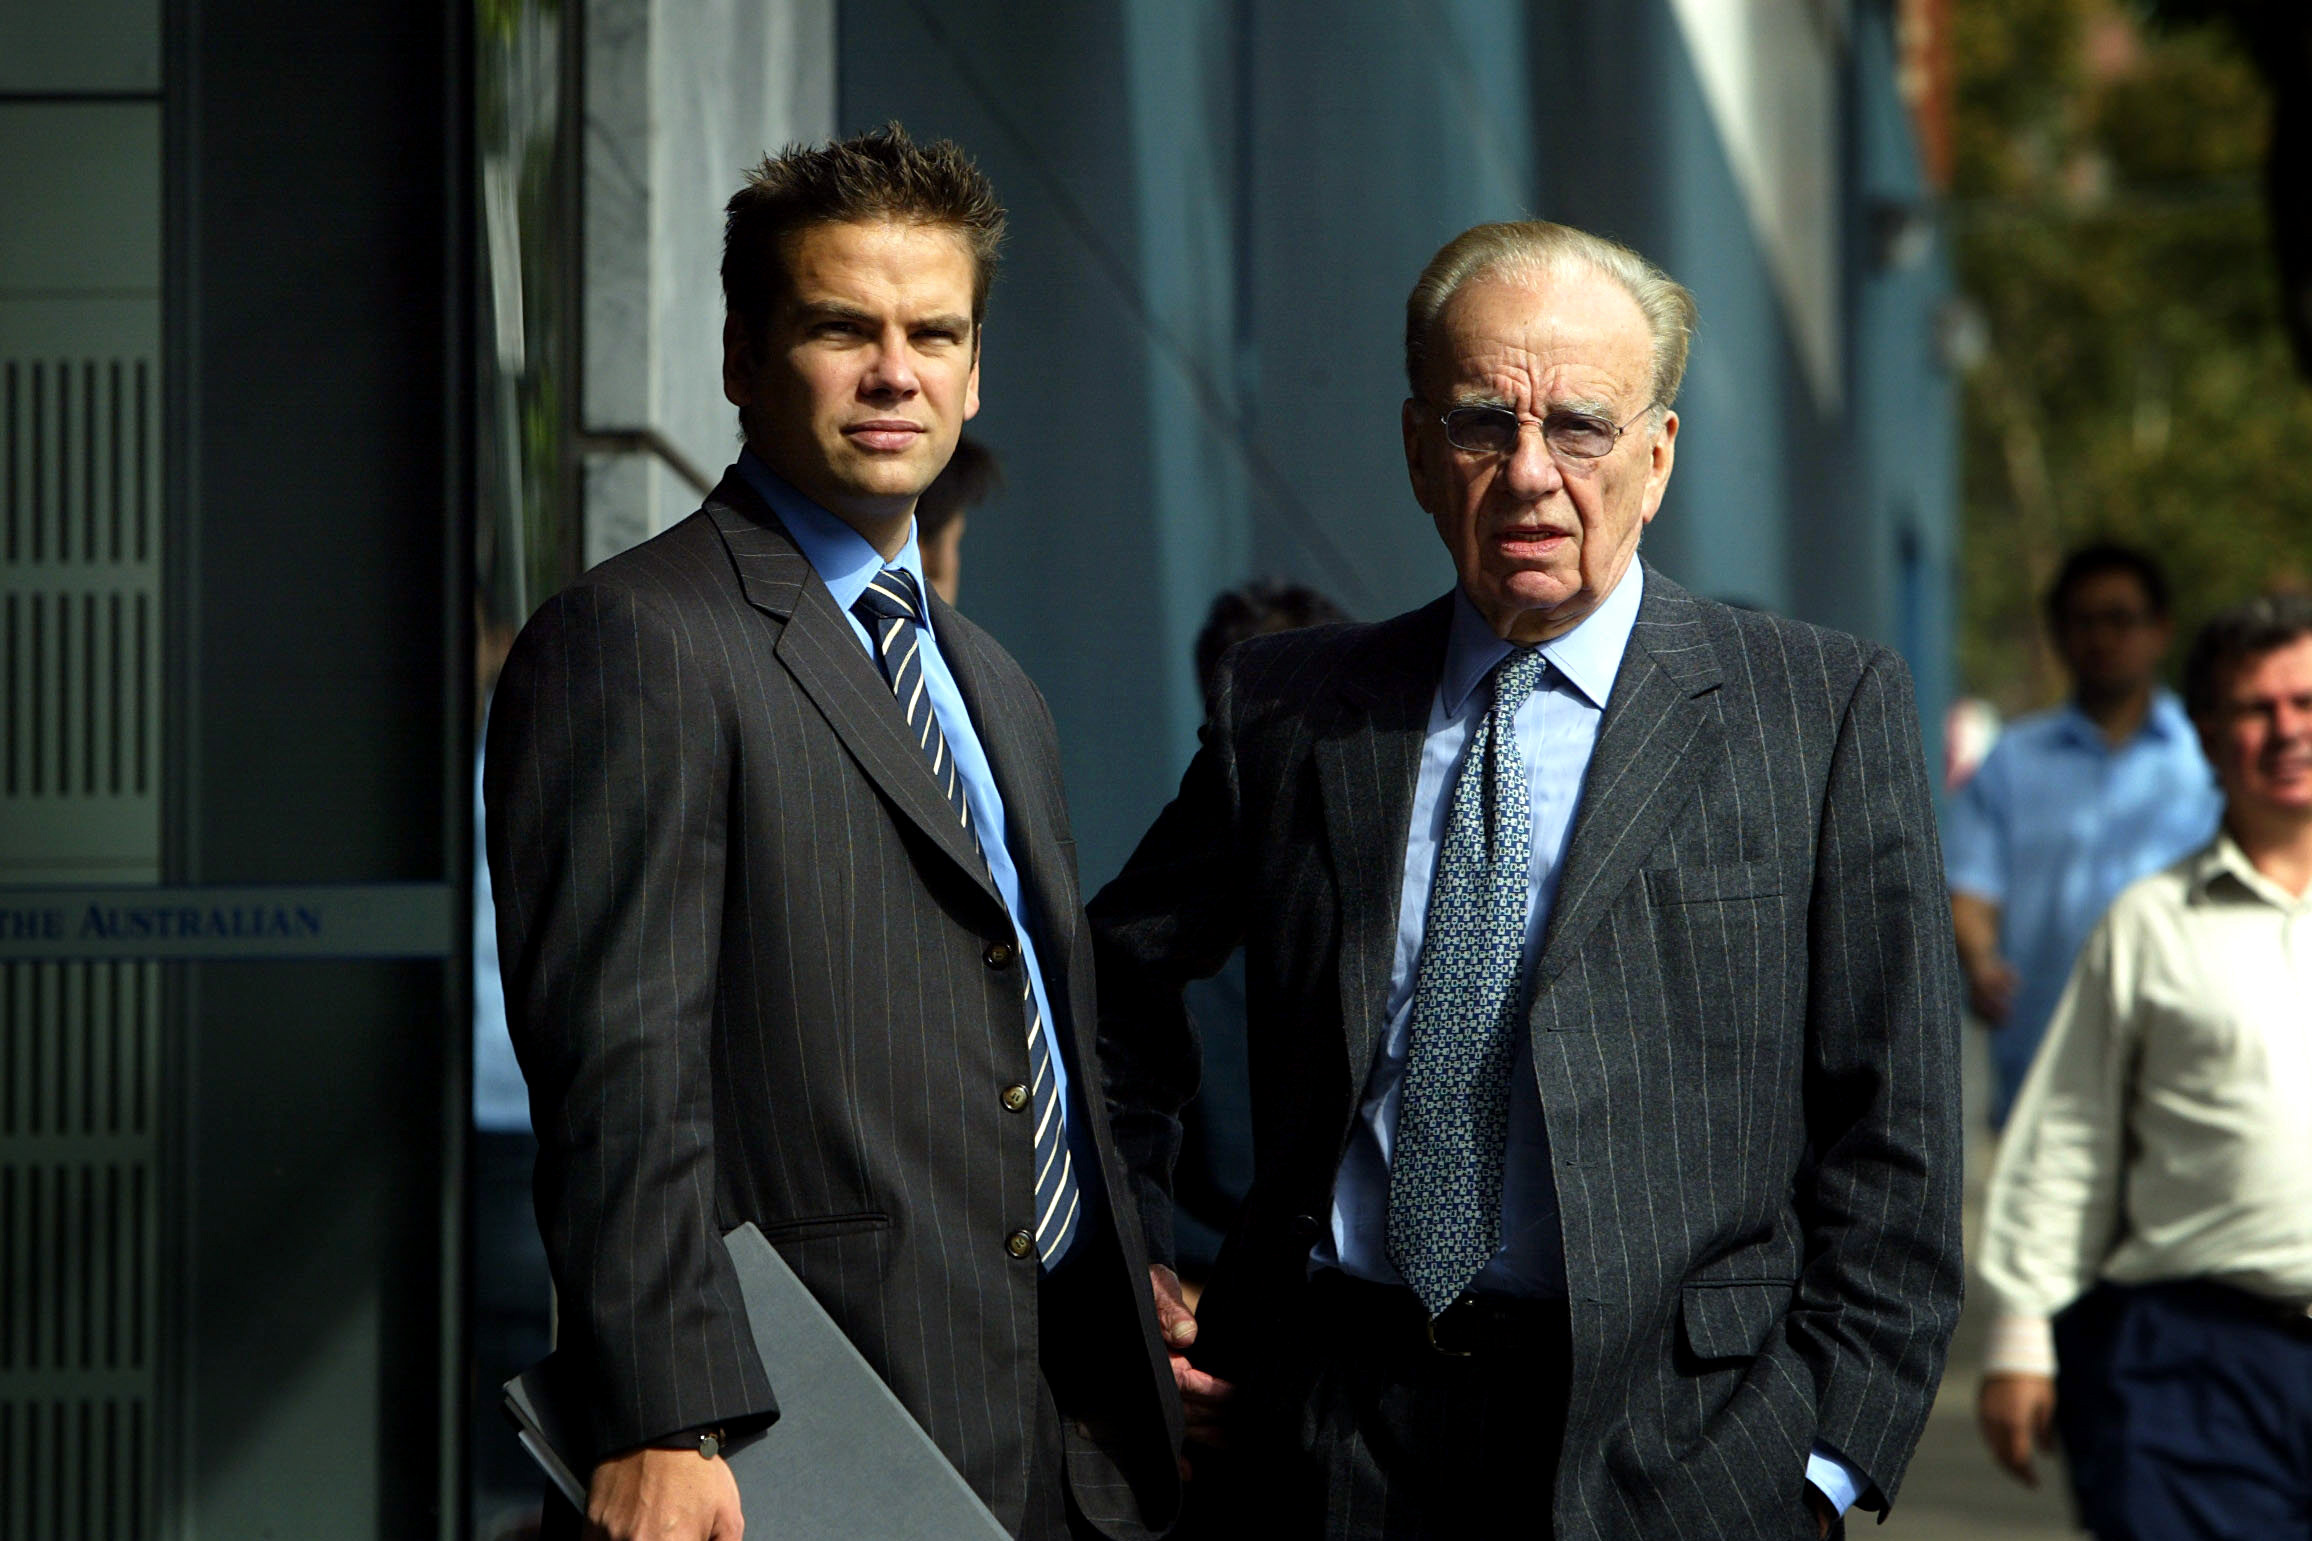 SYDNEY, AUSTRALIA - APRIL 06: (AUSTRALIA OUT) Lachlan Murdoch and Rupert Murdoch outside News Limited in Holt St, Sydney. Rupert Murdoch is Chairman and CEO of News Corporation.  (Photo by Danielle Smith/Fairfax Media via Getty Images)